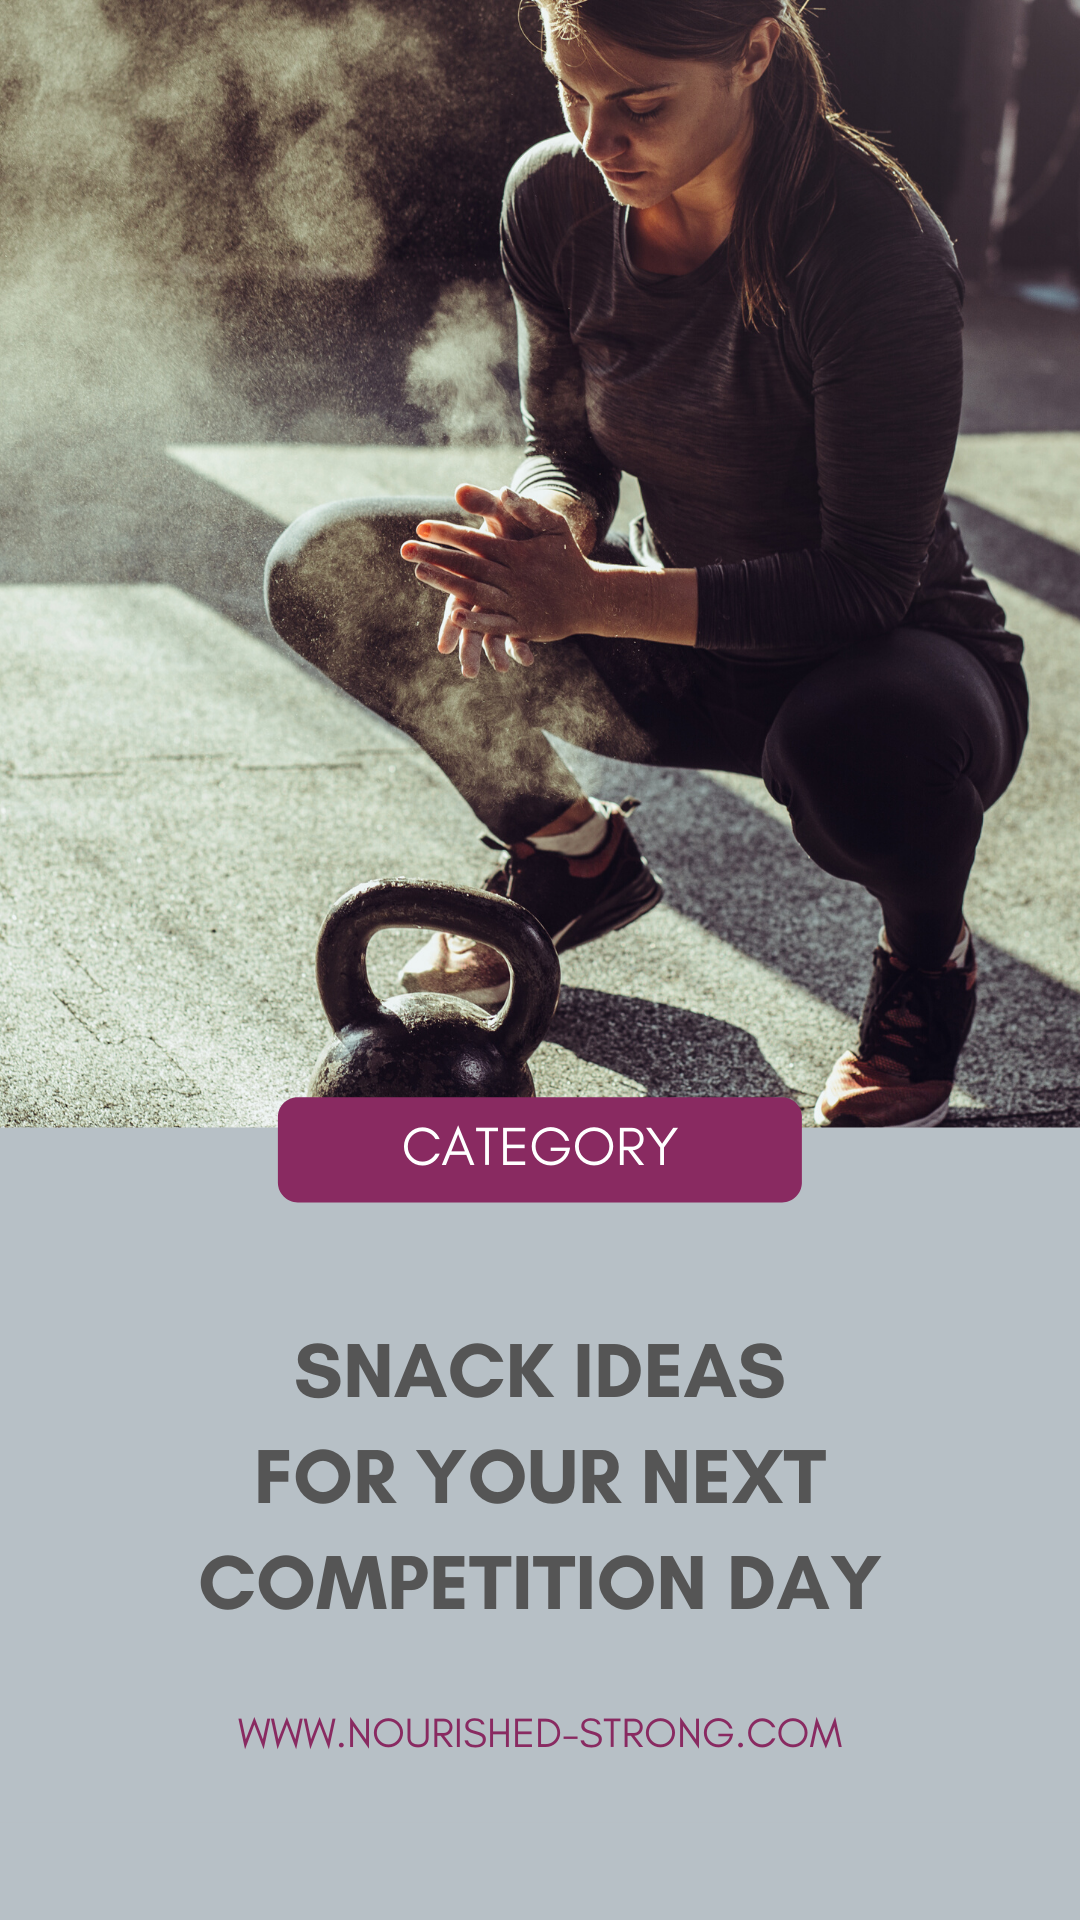 Competition Day Fuel + Snack Suggestions from a Dietitian